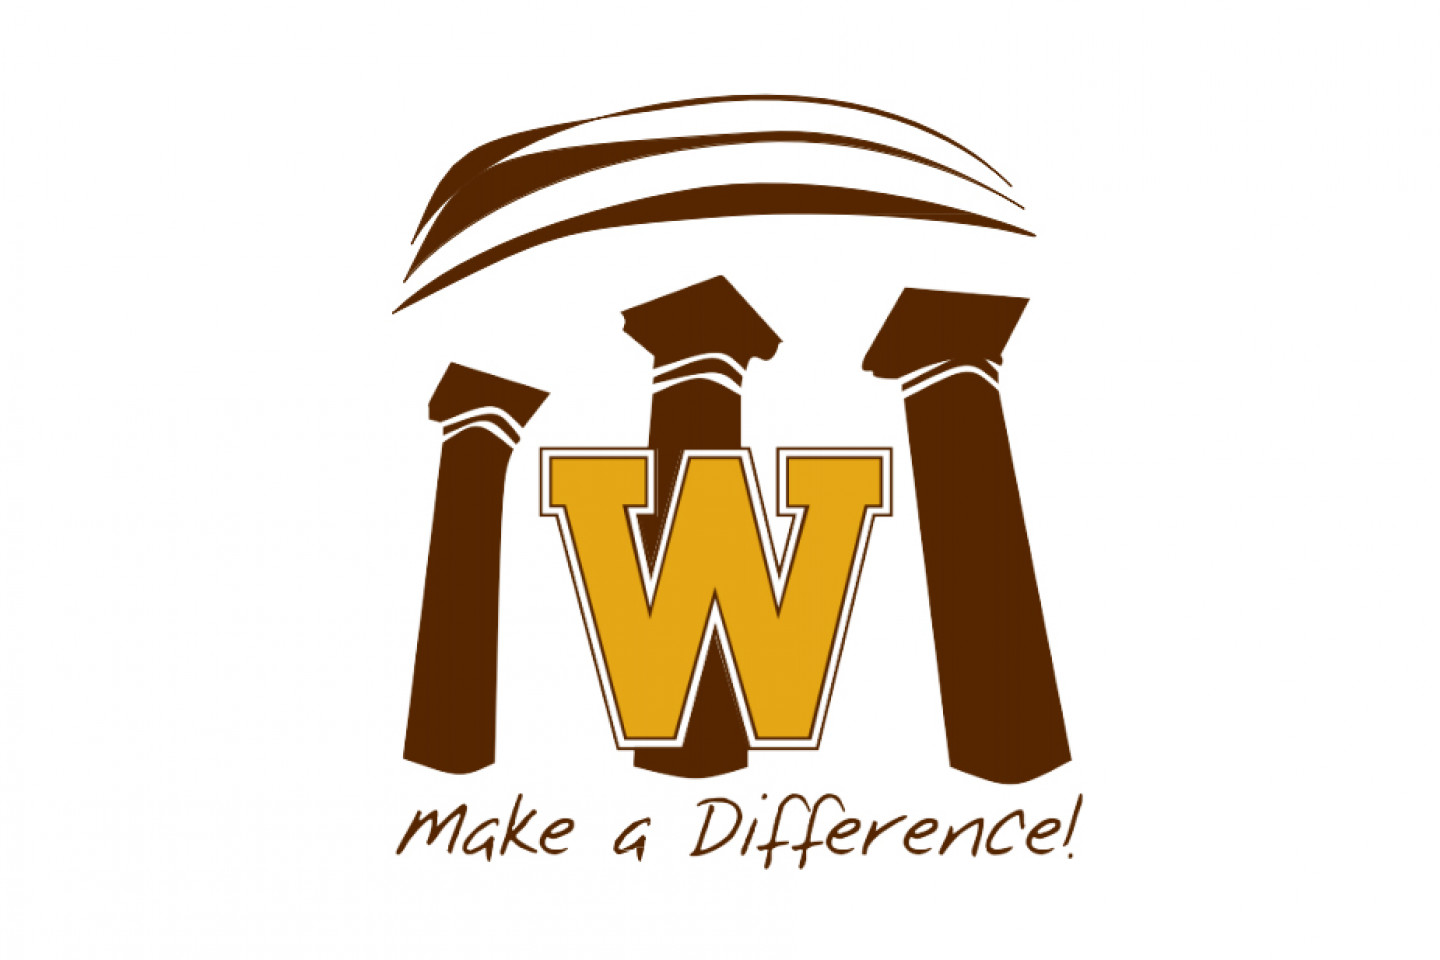 Make a Difference Awards logo.